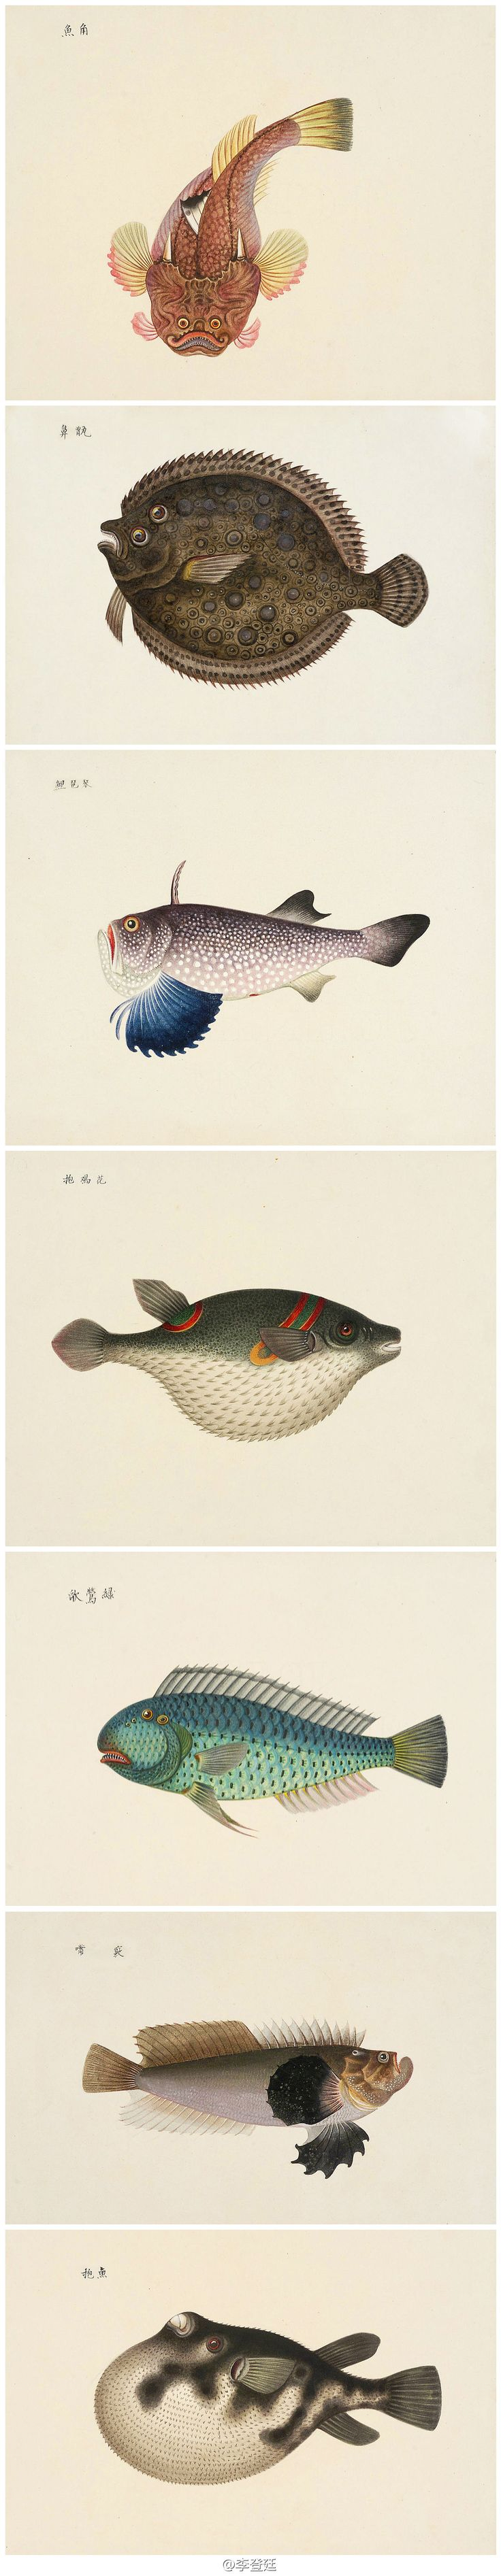 :: Fish :: I've always been especially fond of flounders with their migrating eye... Wonder if these were drawn from life? Study Nature.